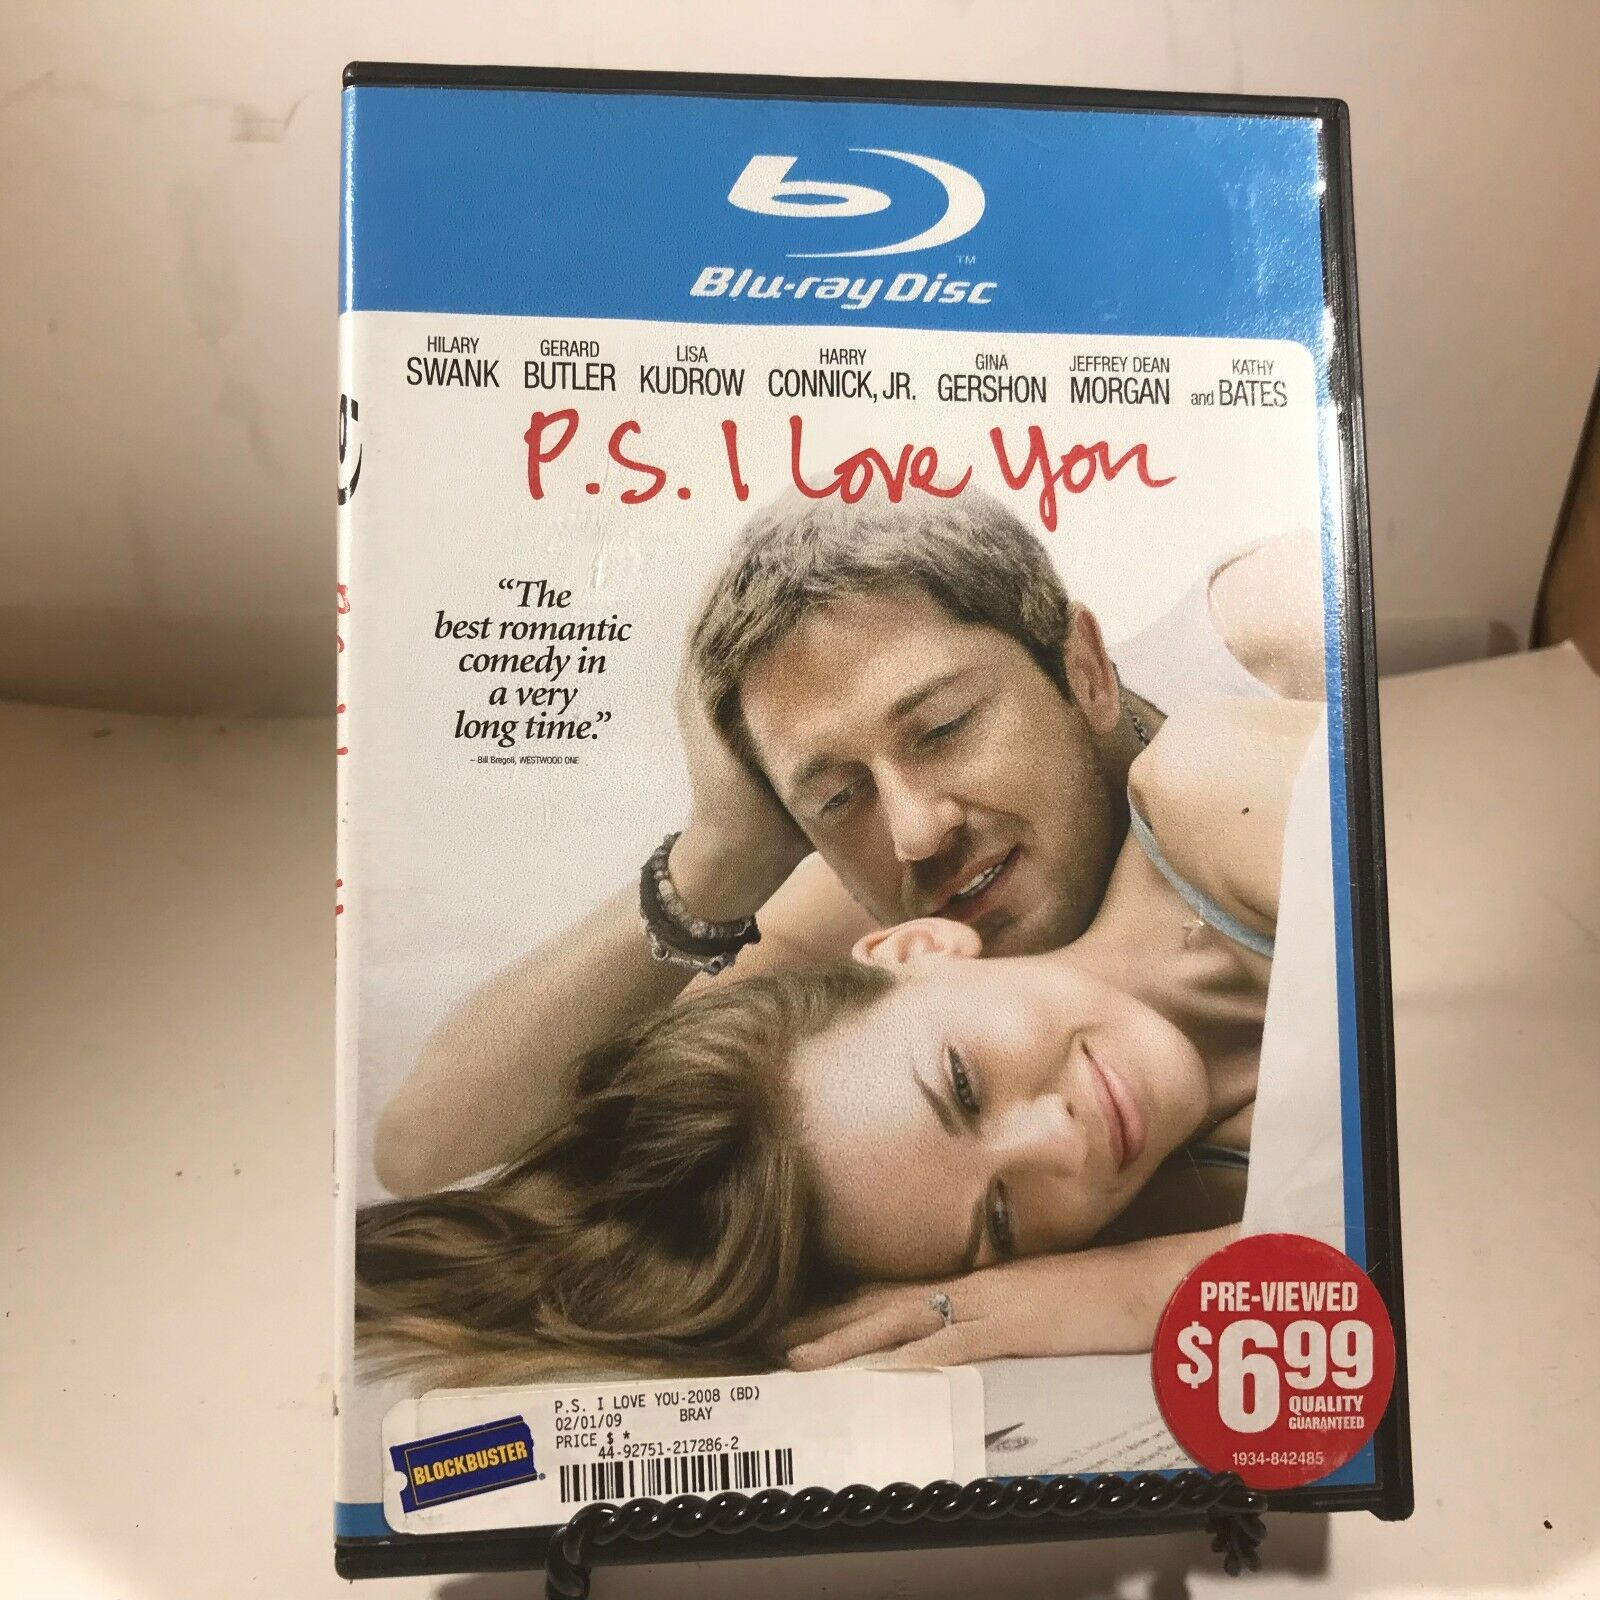 DVD - P.S. I Love You - Hillary Swank, Lisa Kudrow, Harry Connick Jr. - $2.33